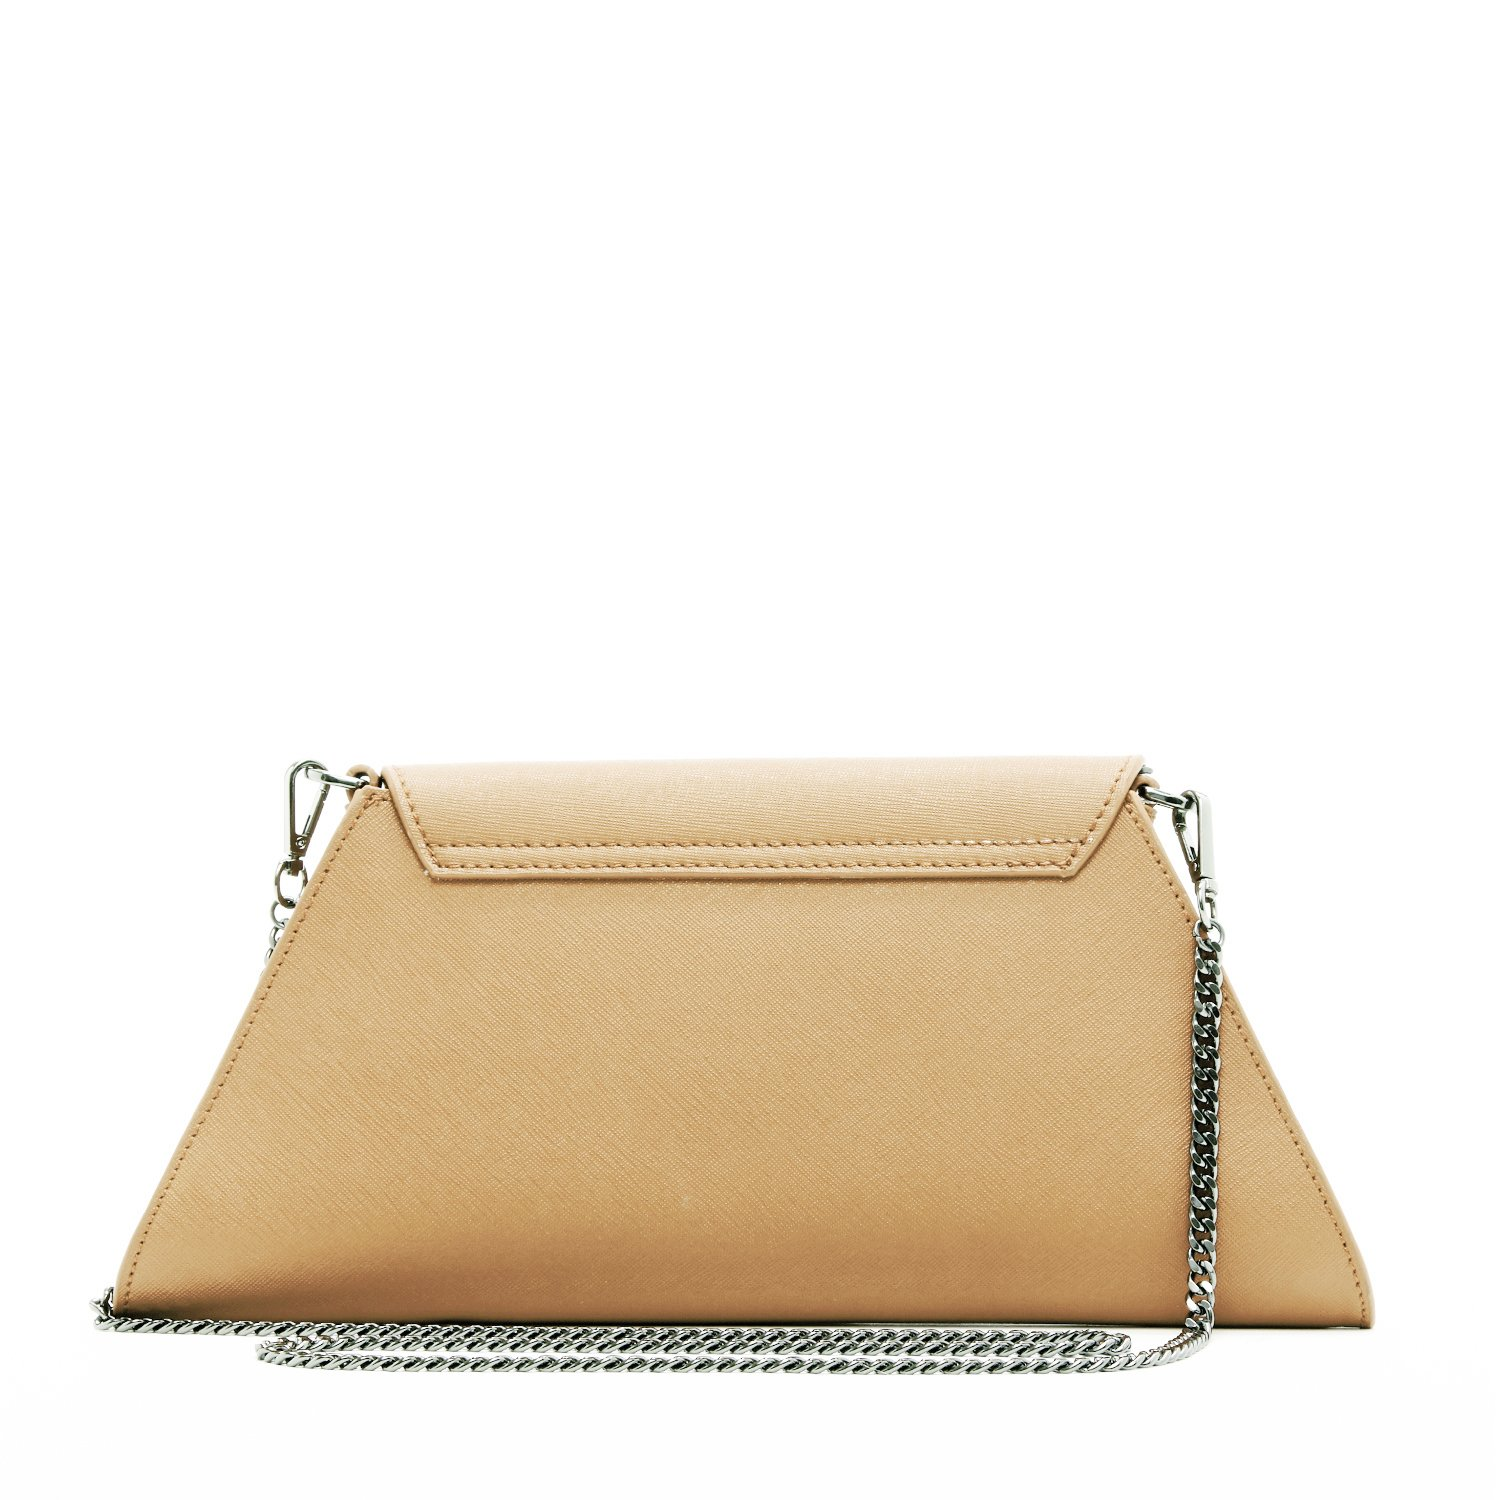 67b509009a5f Nude Clutch Purse For Women - Taupe Clutches and Purses Tan Evening Bags  Womens Beige Saffiano Leather Cream Neutral Envelope Designer Handbags Cute  ...